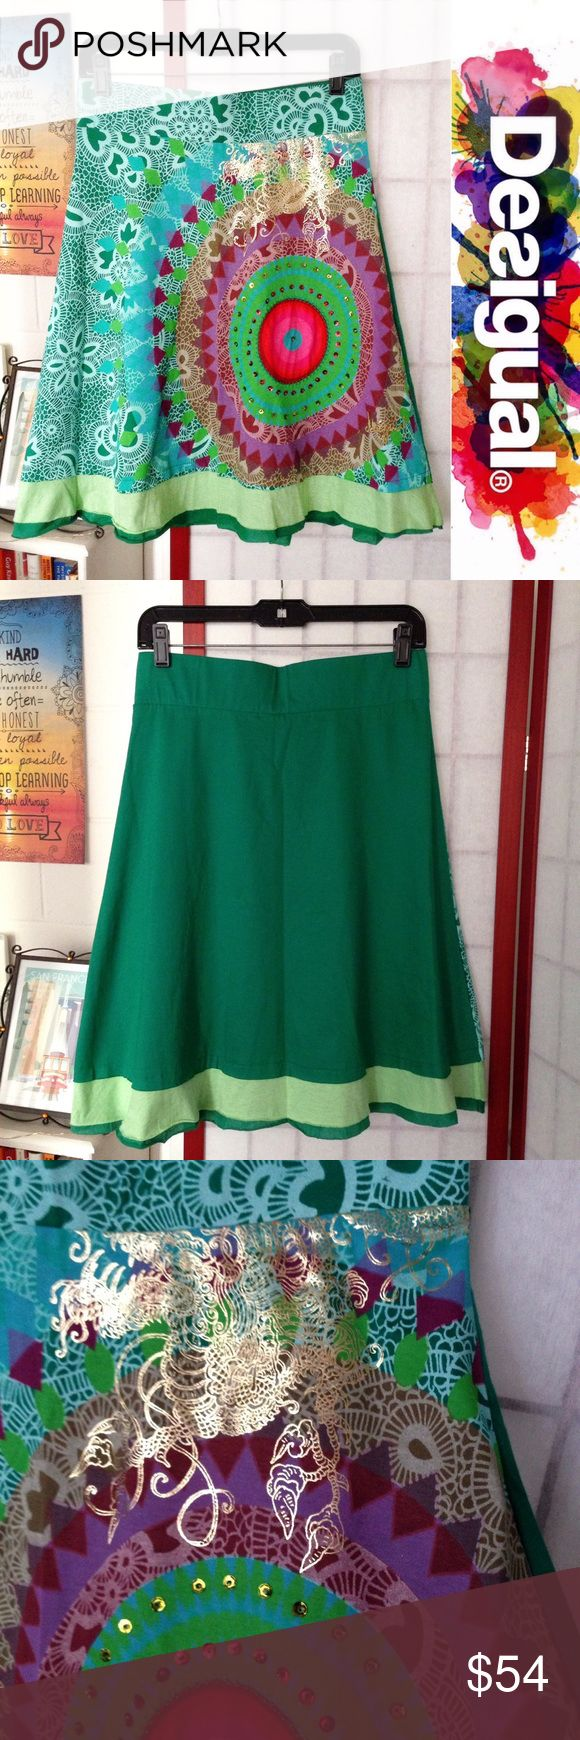 """Desigual (NWOT) Gardner knee skirt ✨statement✨ Size S (hip is elastic & aprox 14 3/4"""" flat across) • 100% cotton • NO FLAWS & NEVER WORN! • Length of skirt is aprox 23.5"""" • Lots of sequined embellishments & gold foil dragon-like pattern • Orginally purchased at Desigual's Ala Moana store in Honolulu, HI • Any questions, ask away!  Desigual Skirts A-Line or Full"""